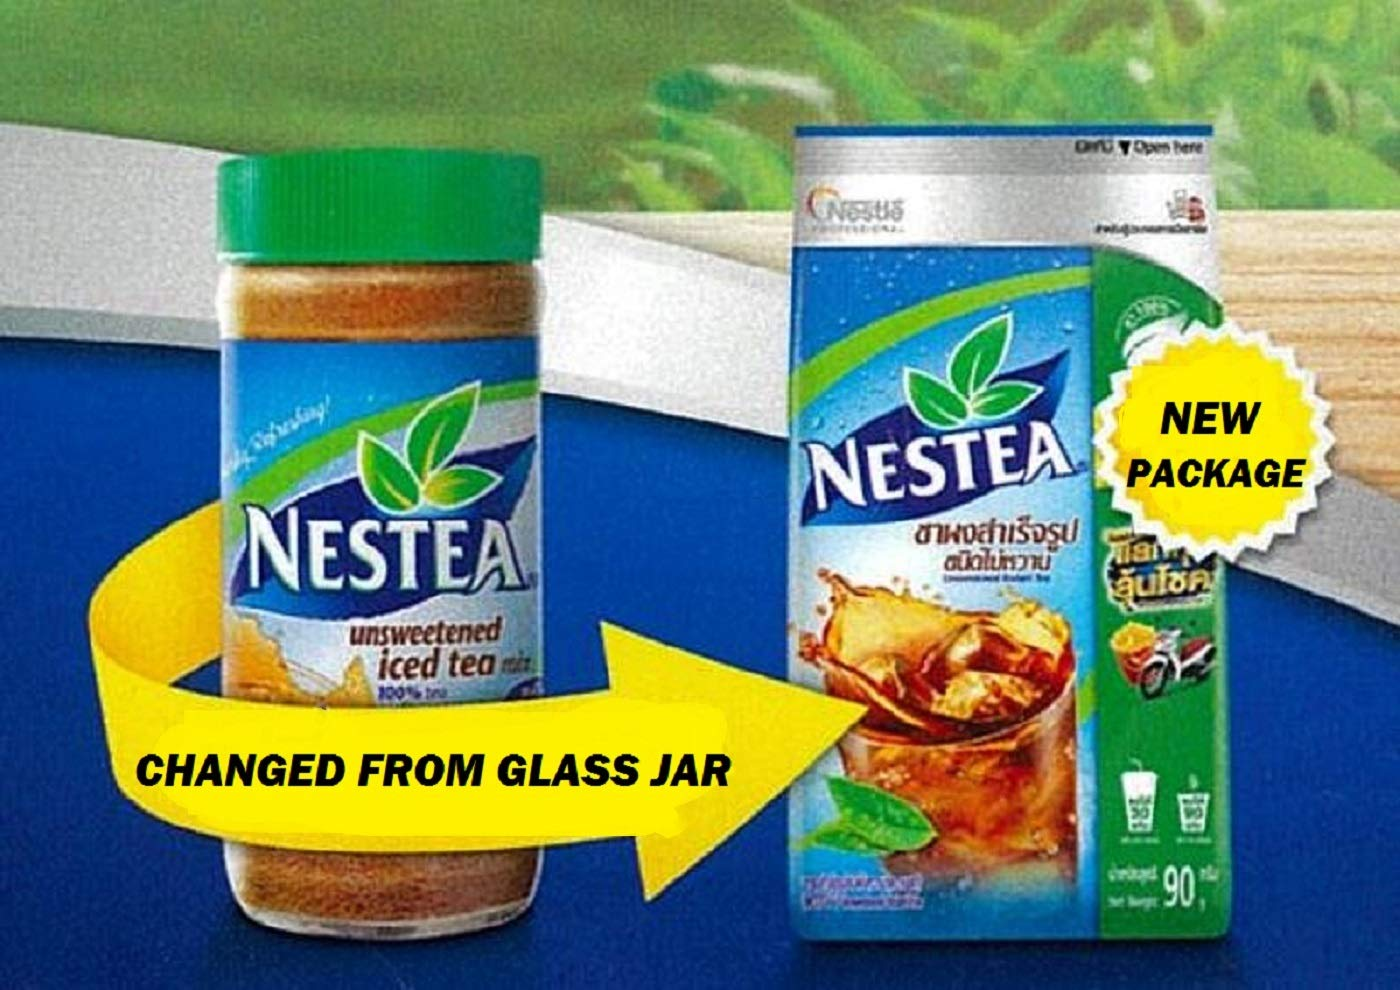 Neatea Unsweetened Instant Tea 100% (90g.) New Package